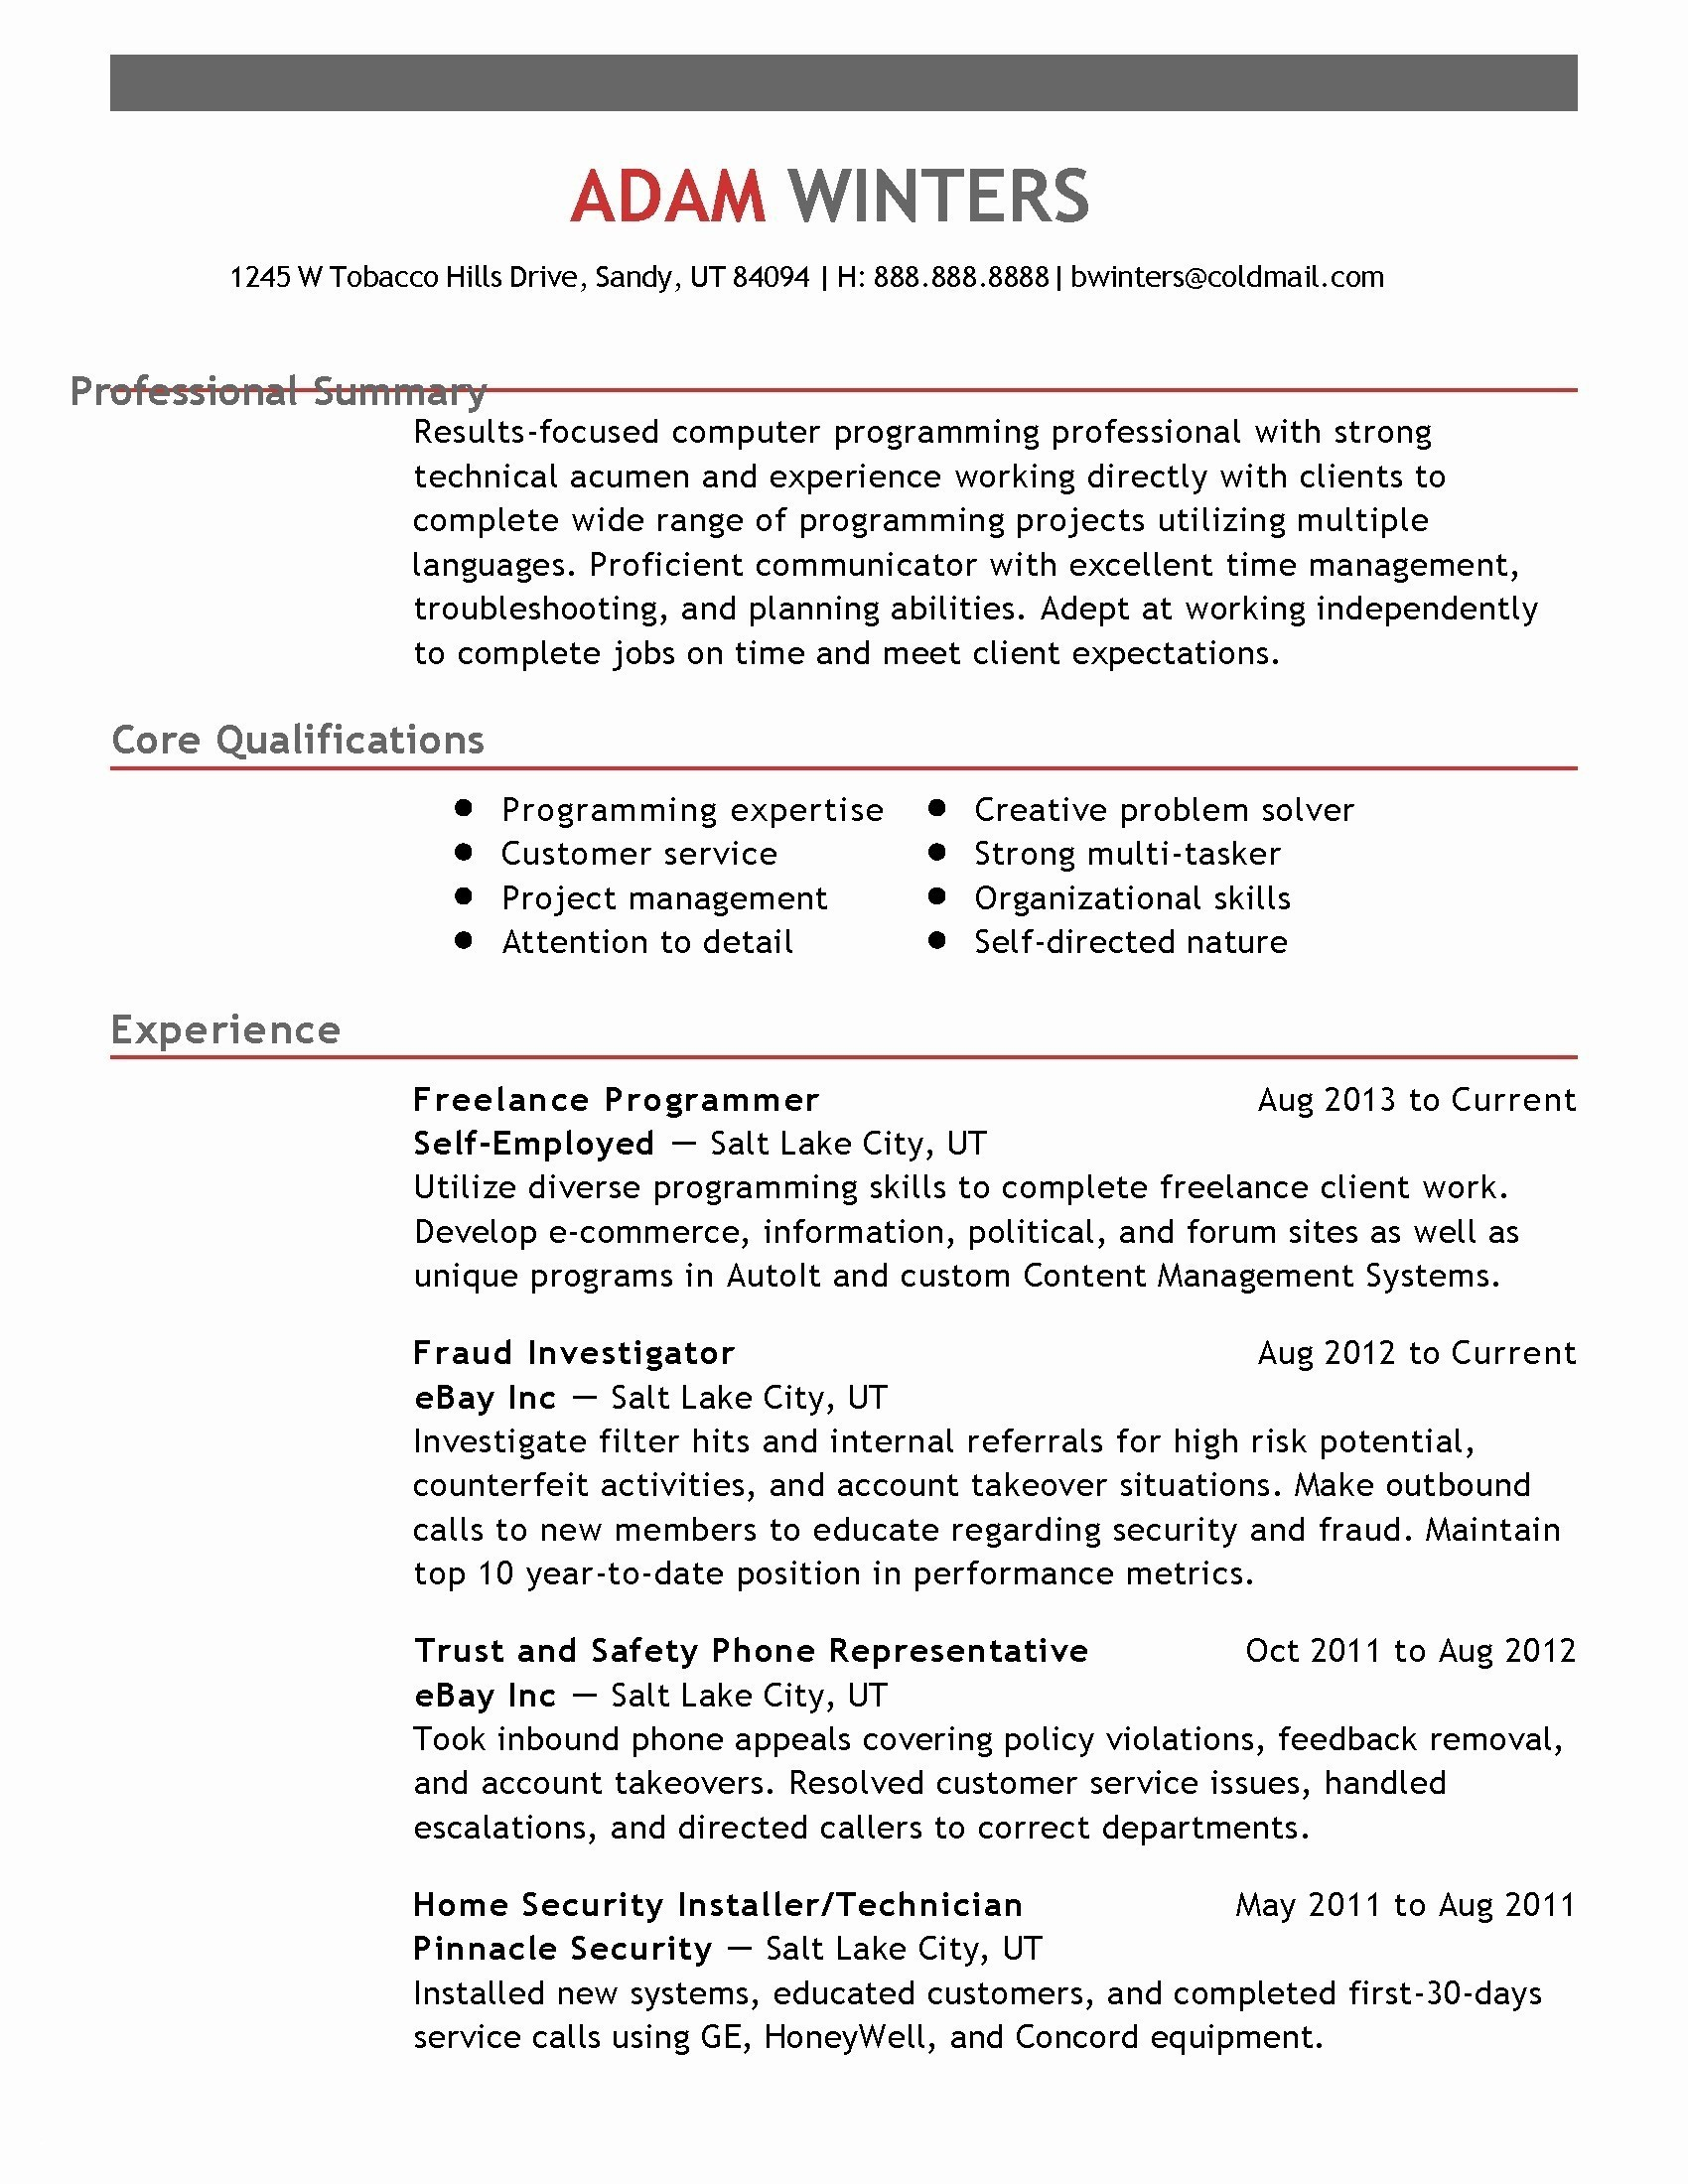 Professional Resume Template Free Download - Best Resume Templates Download Free Inspirationa Resume Template